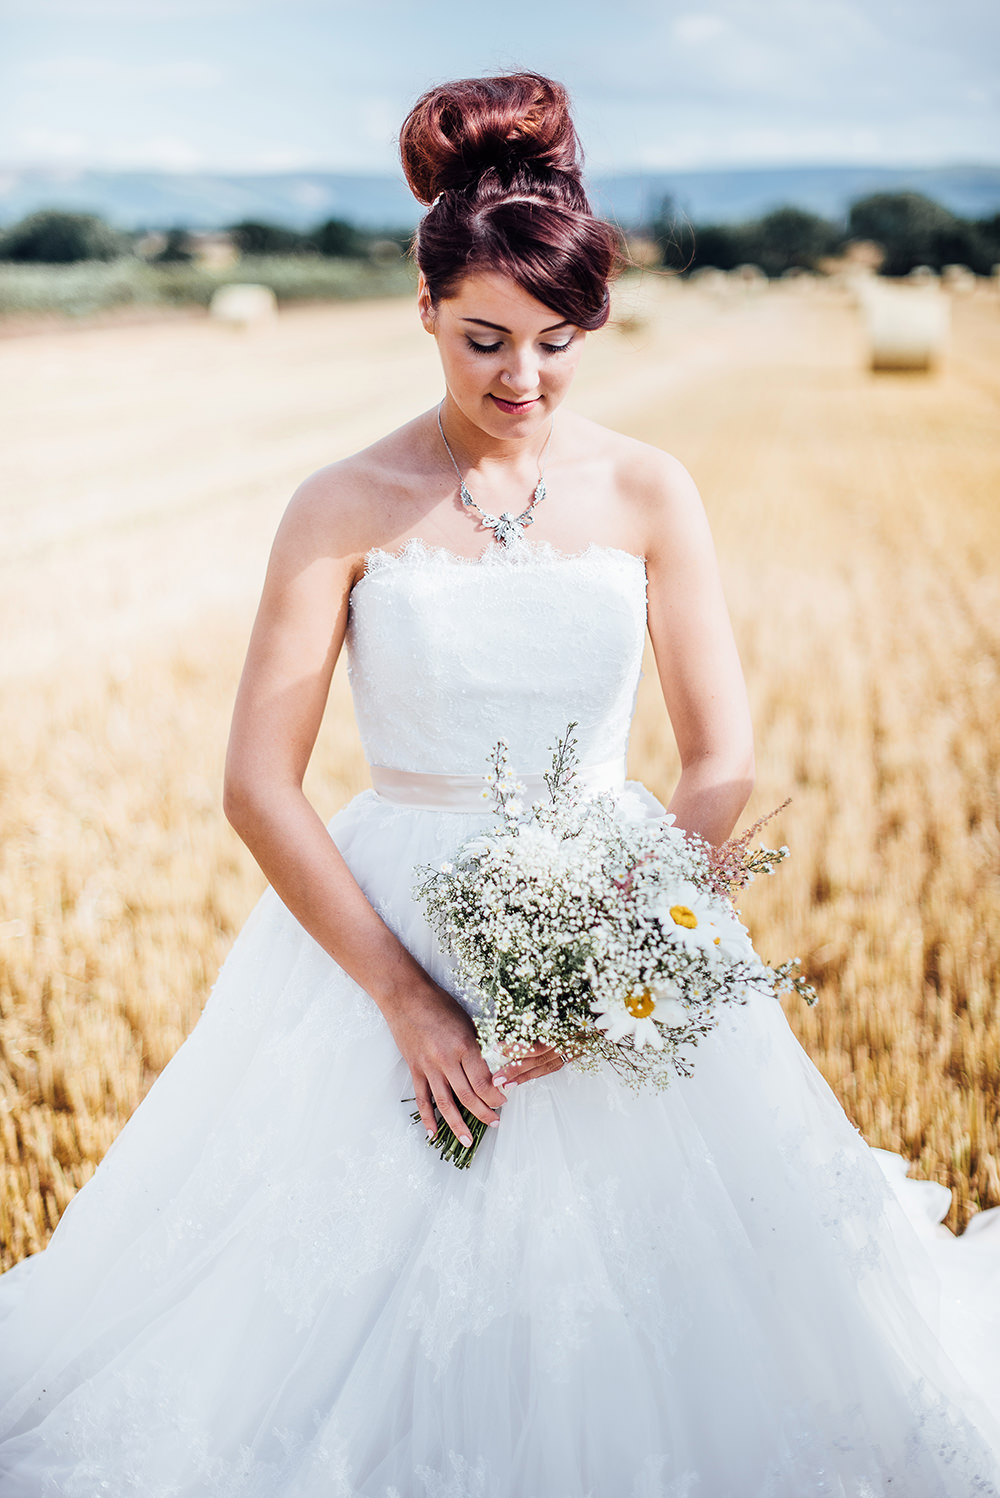 Rustic Woodland Themed DIY Wedding at Angrove Park Yorkshire with ...